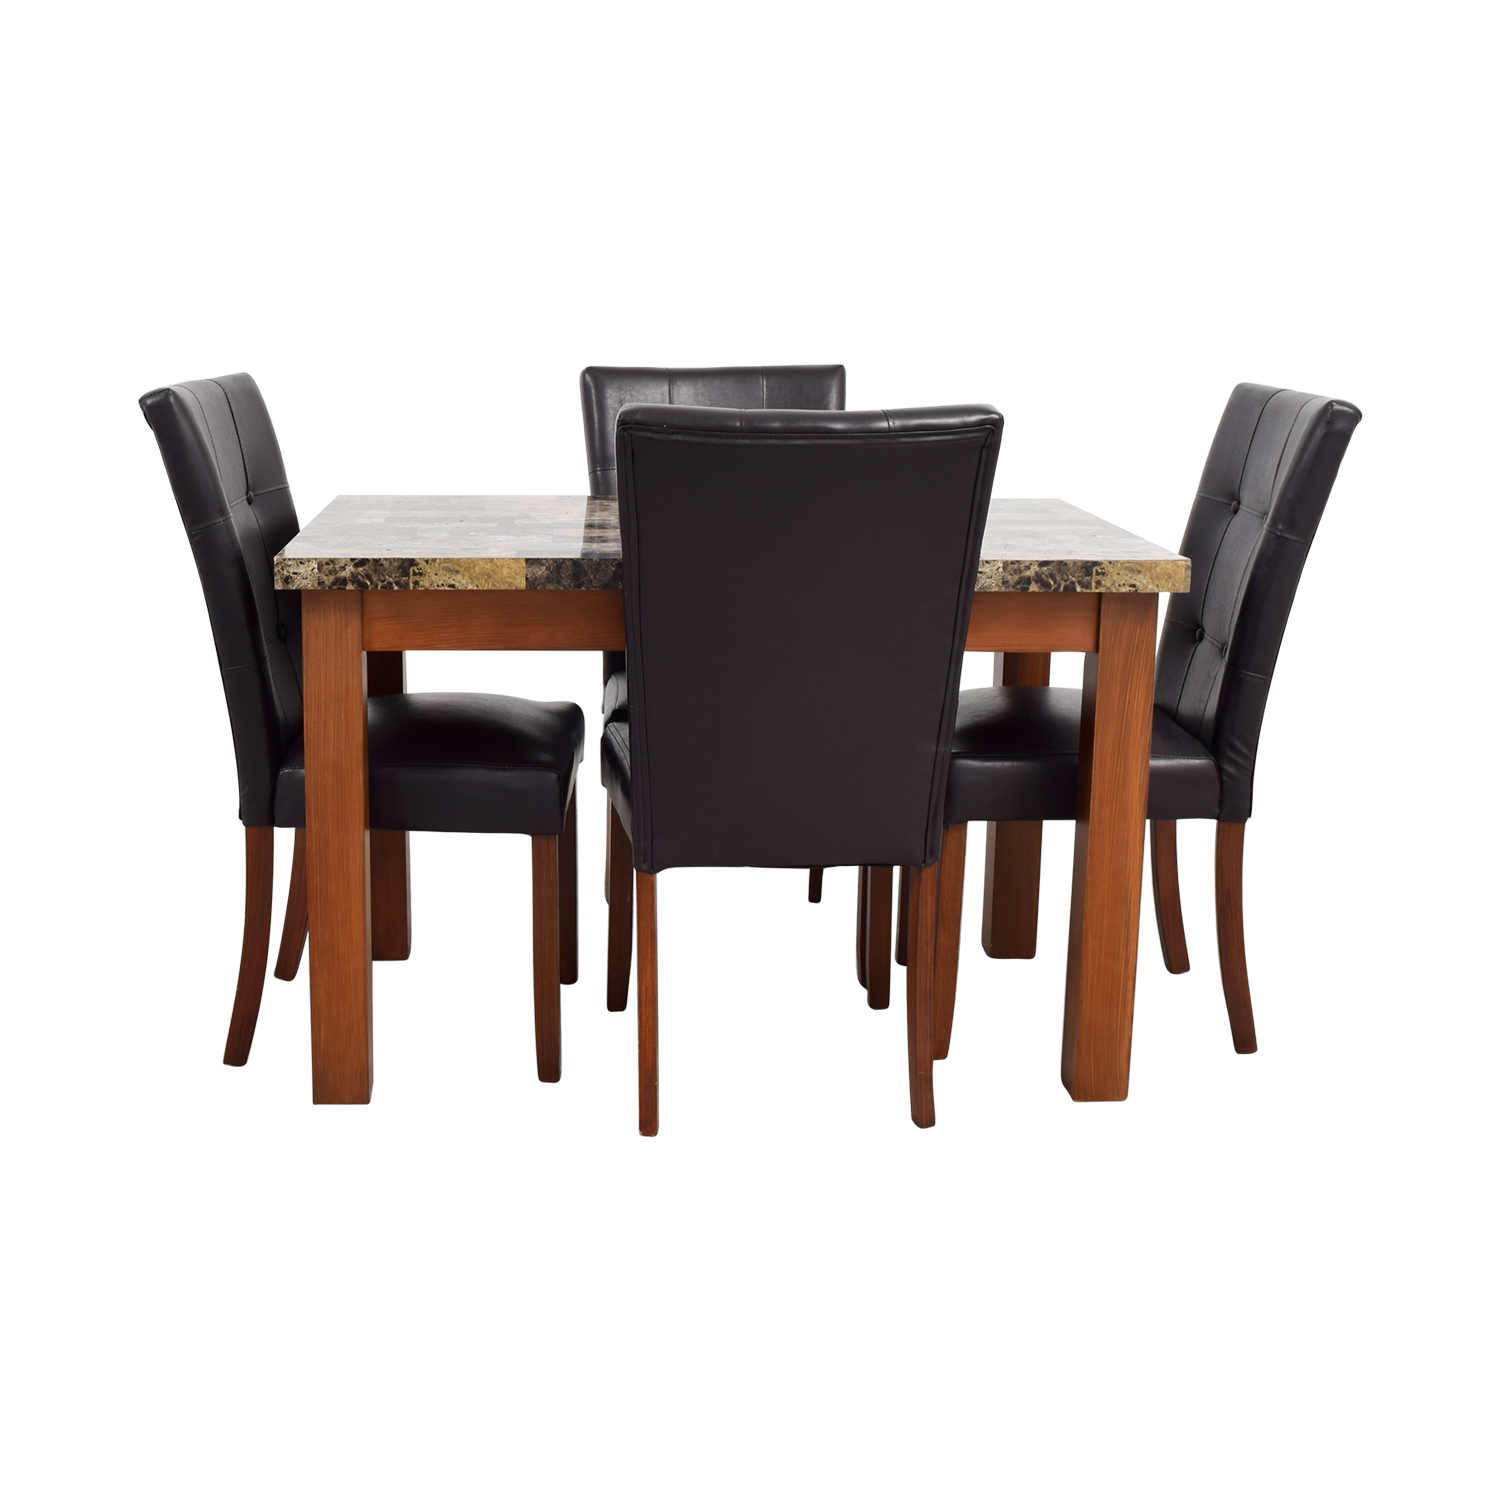 Faux Marble Dining Table with Brown Tufted Leather Chairs